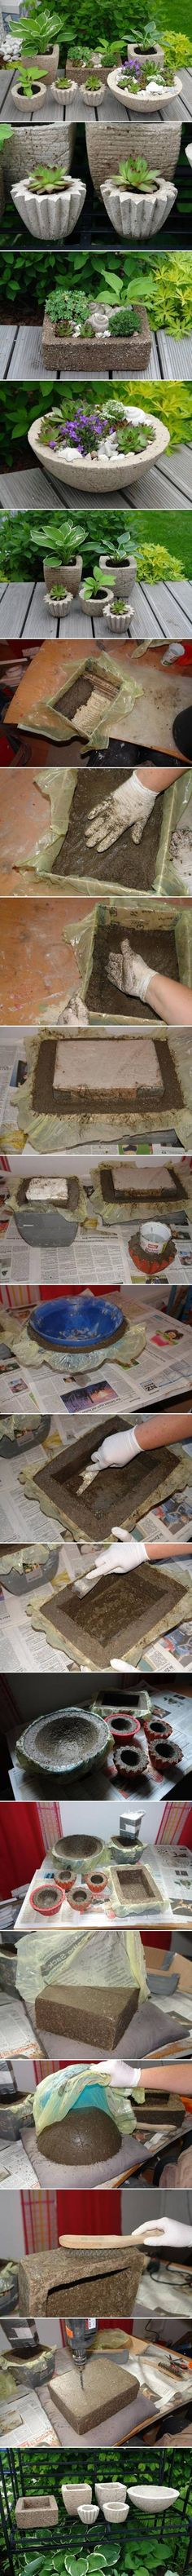 DIY Variety of Cement Planters DIY Projects / UsefulDIY.com